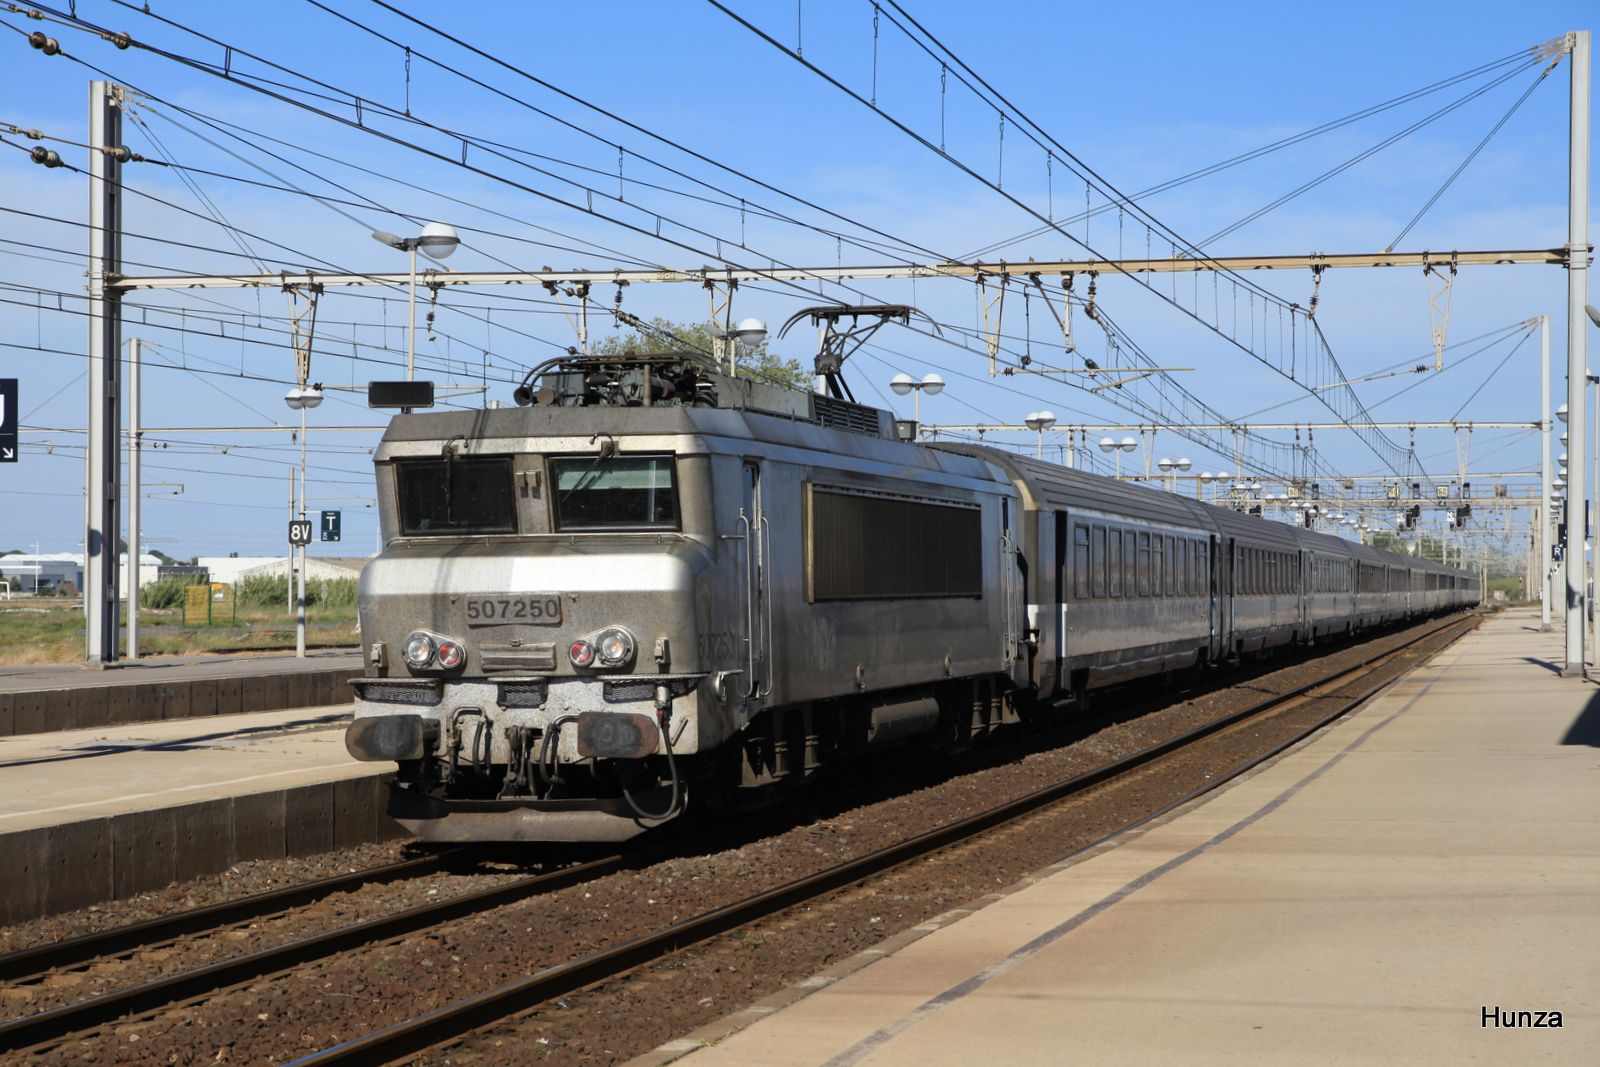 Sète : passage du train Intercités Nice - Bordeaux n°4768 avec la BB 507250 (14 avril 2017)